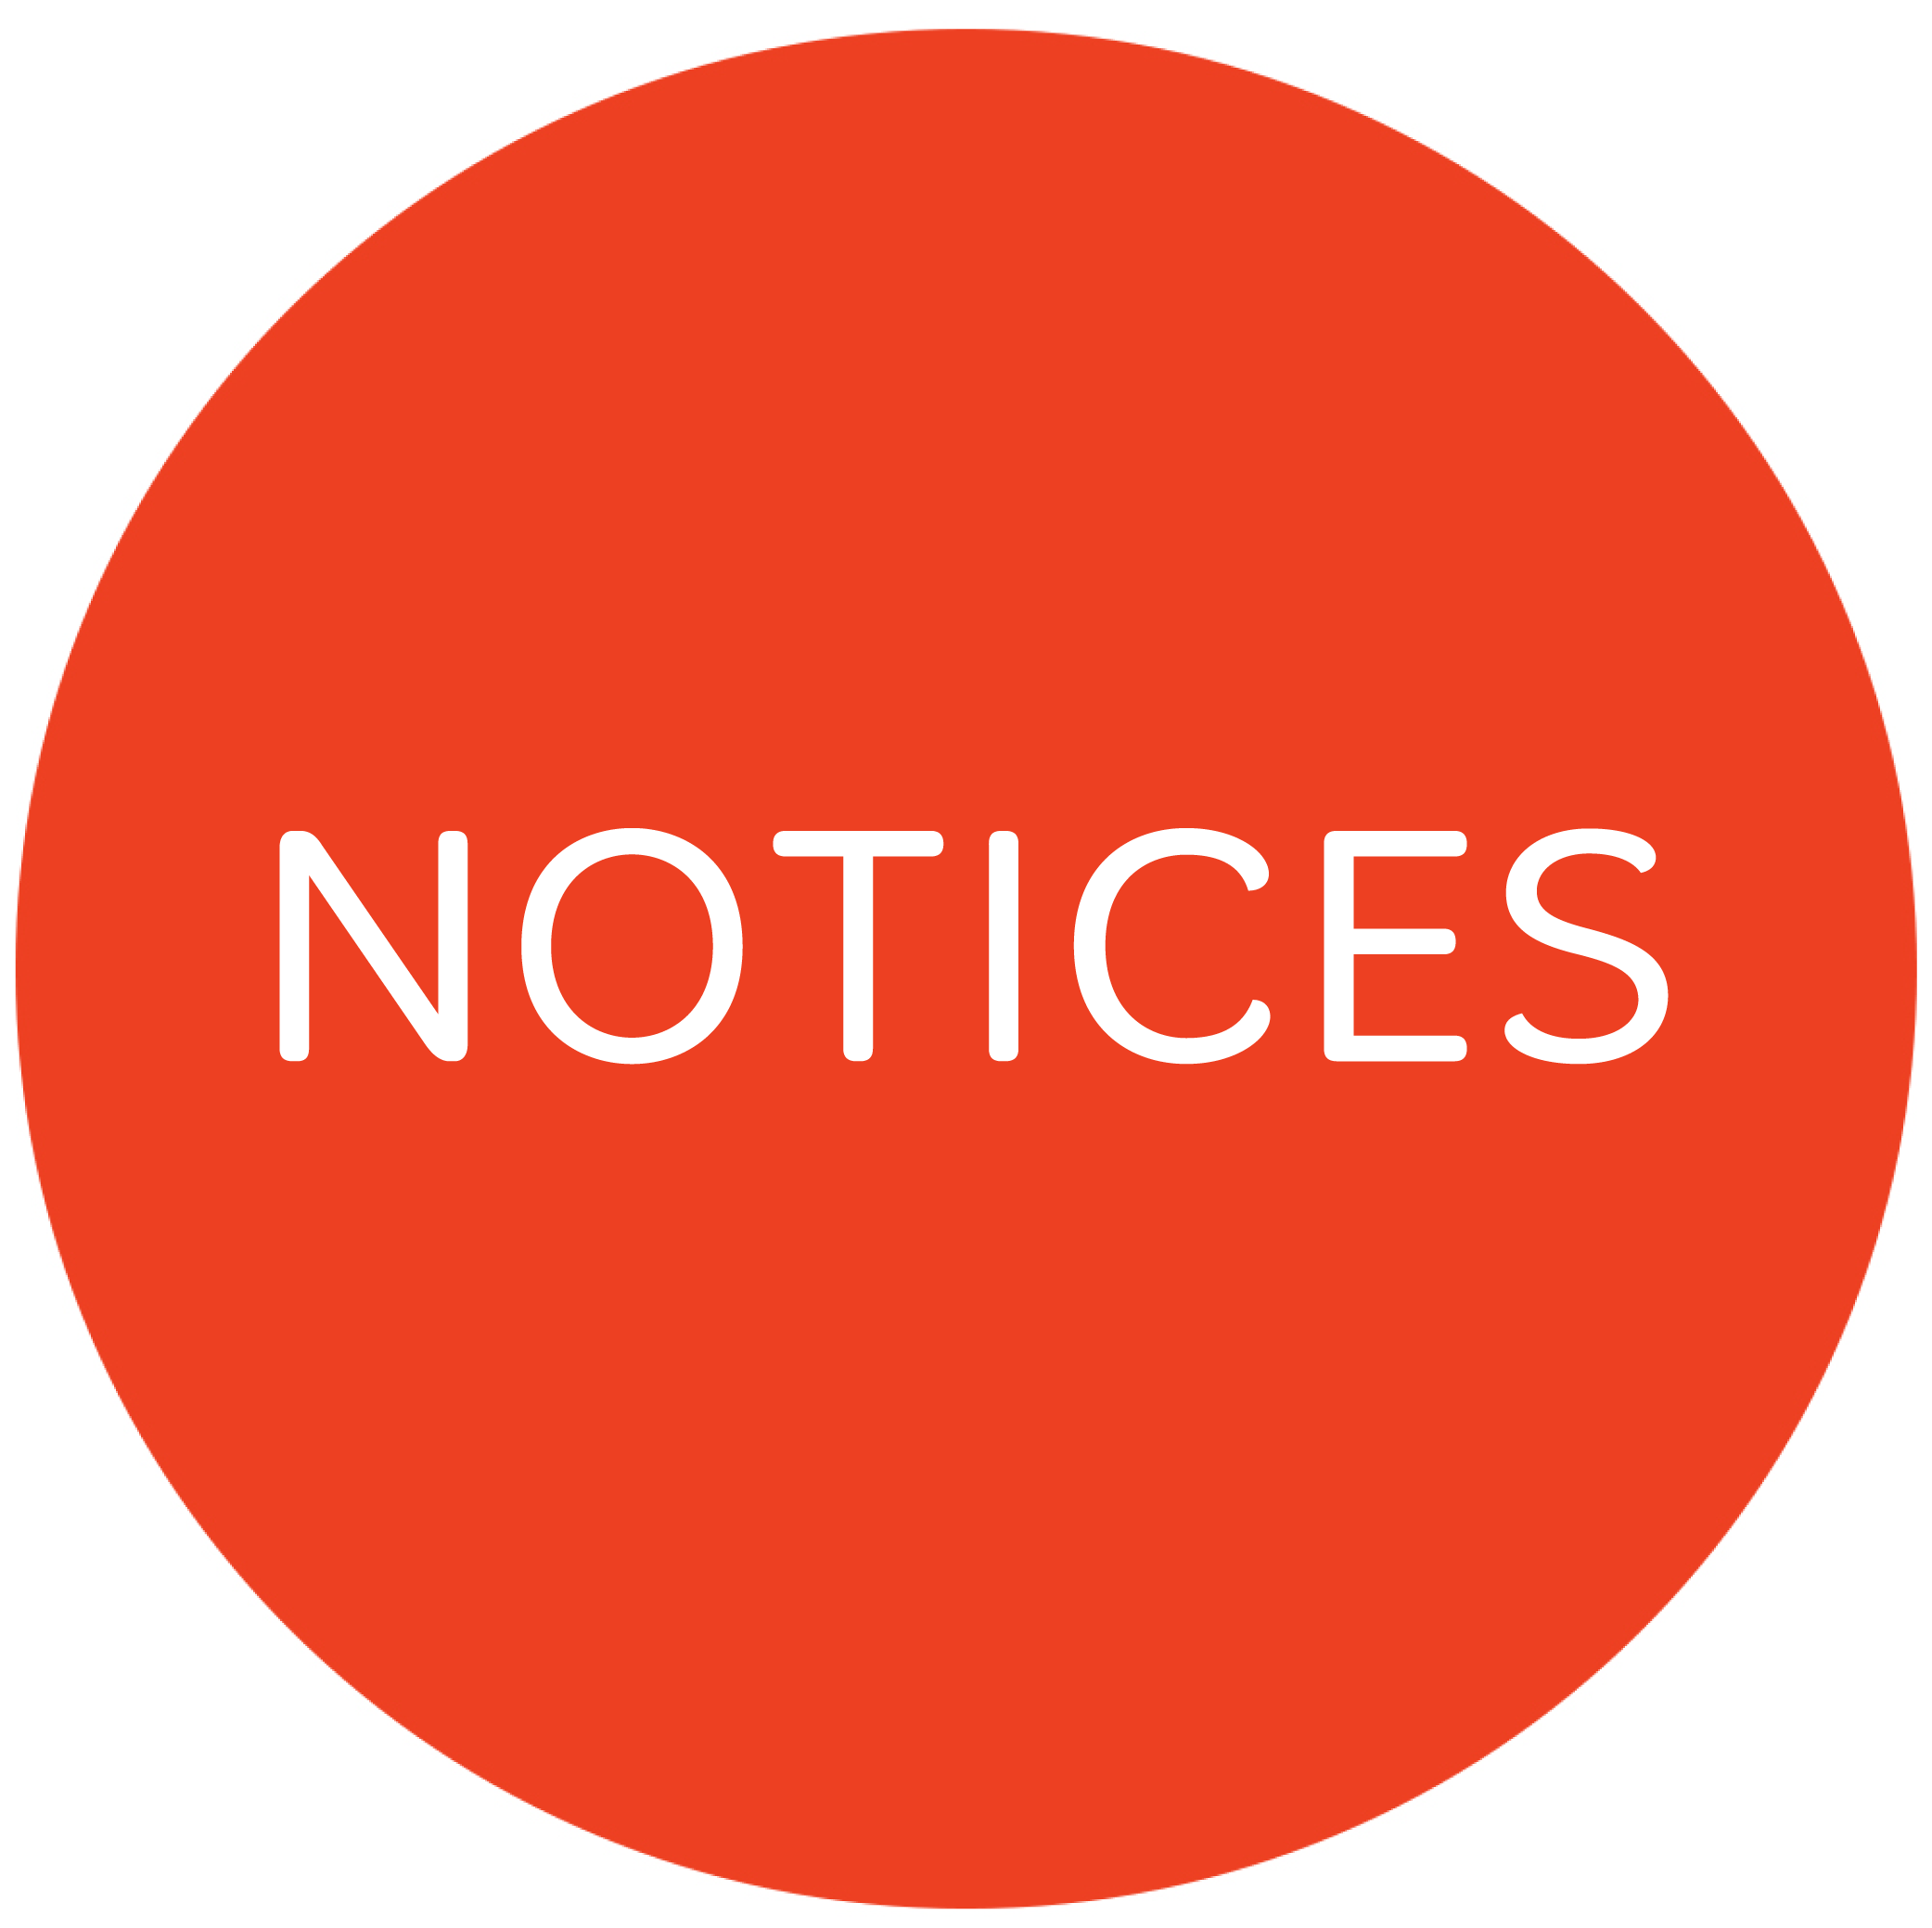 Notices- 12 May 2019